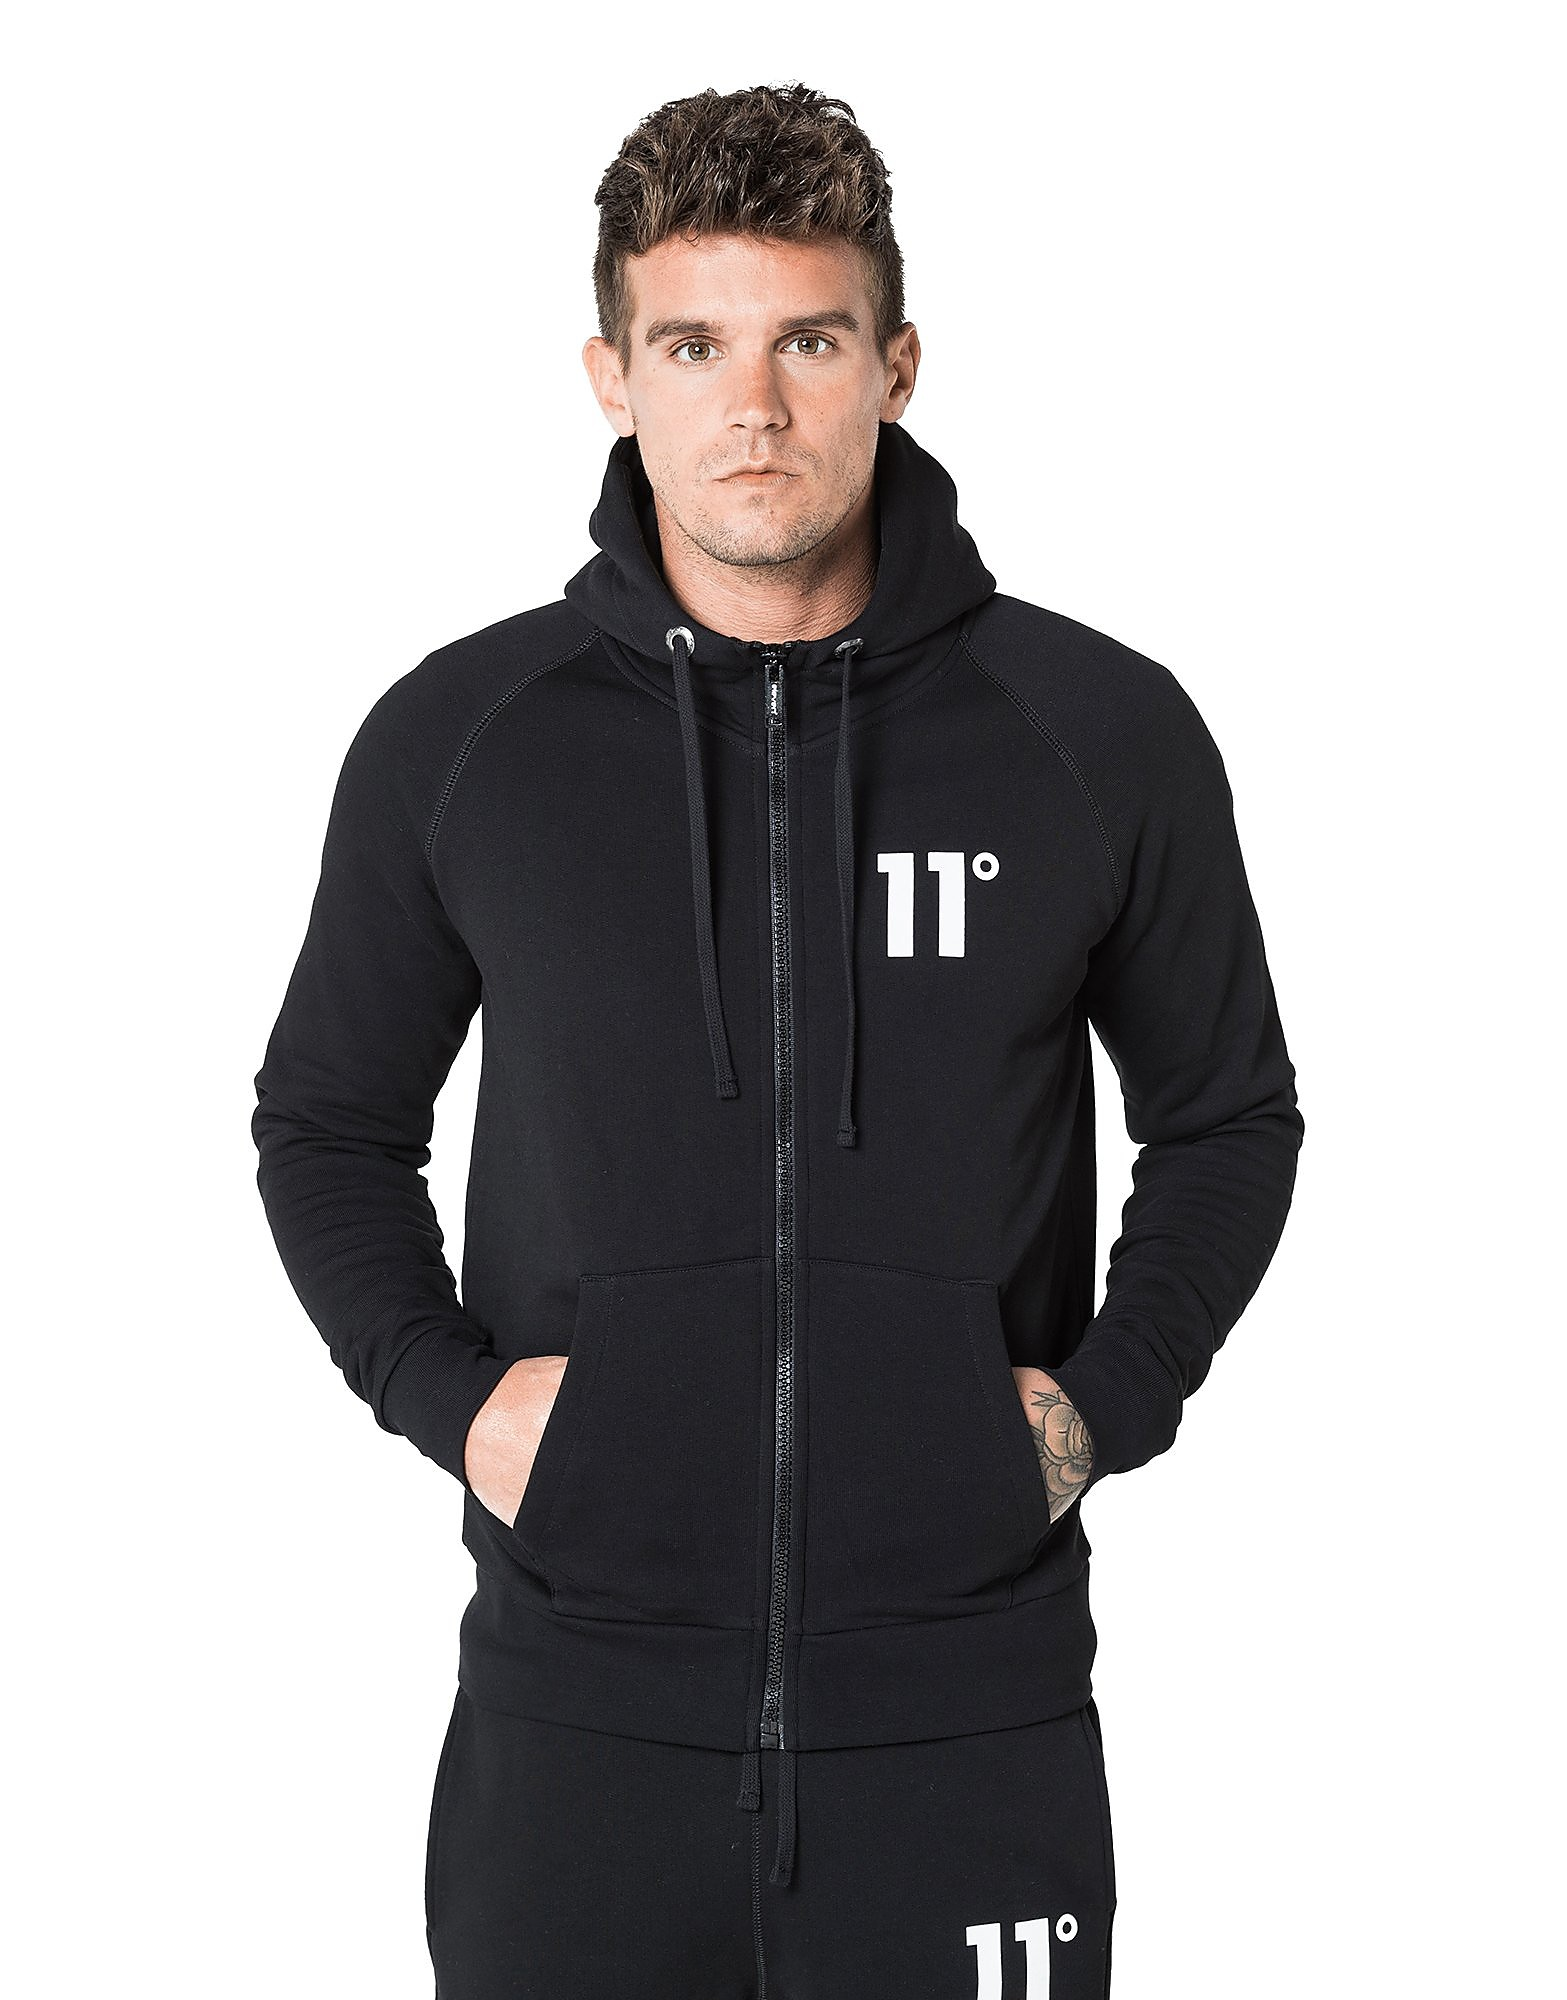 11 Degrees Core Fleece Zip Through Hoody